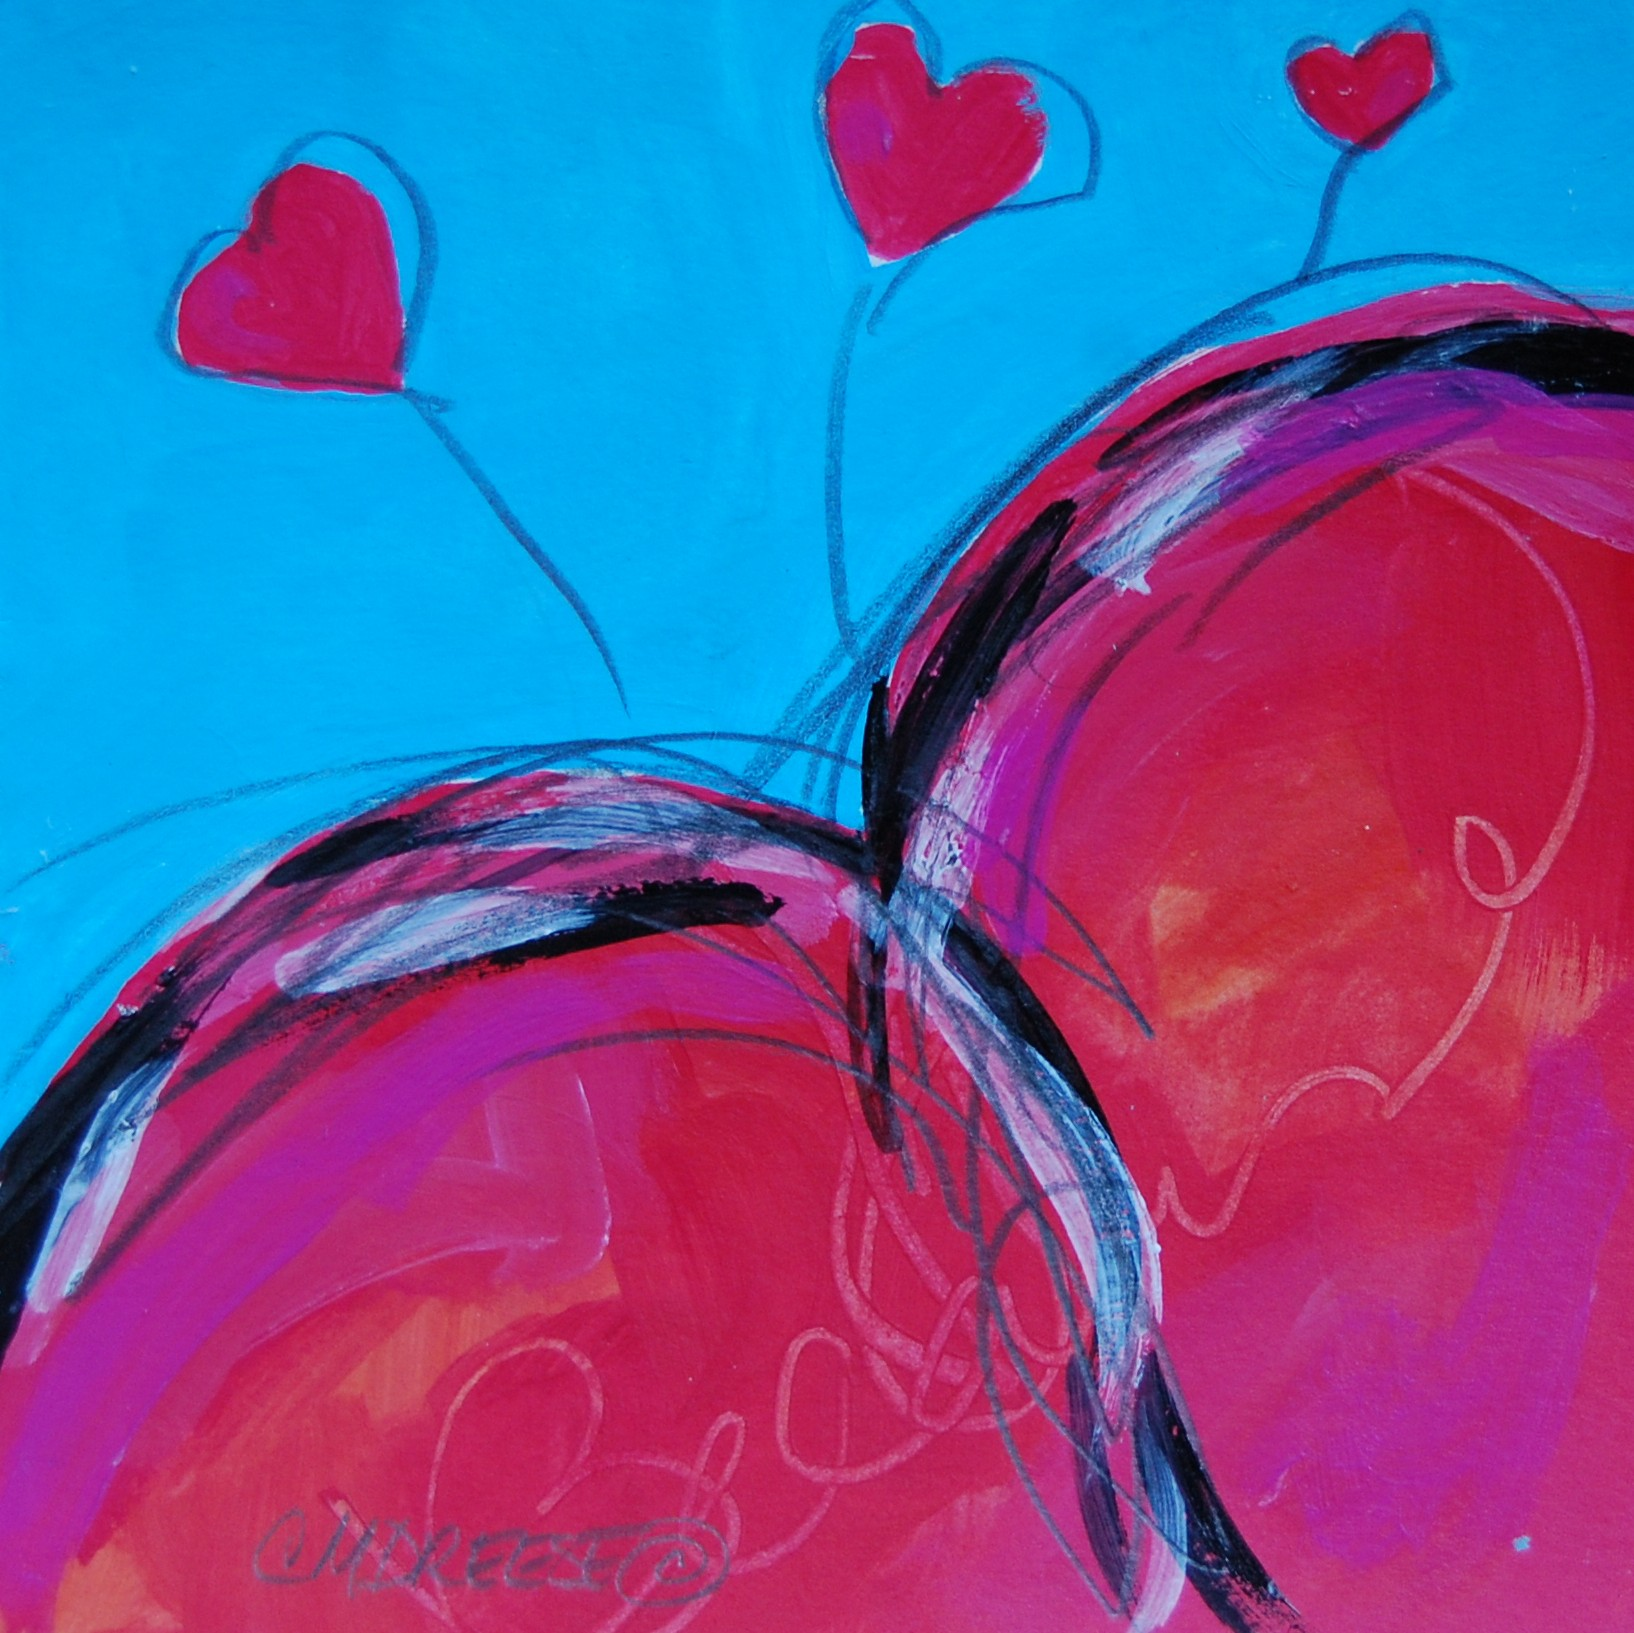 Christi Dreese's Valentines paintings